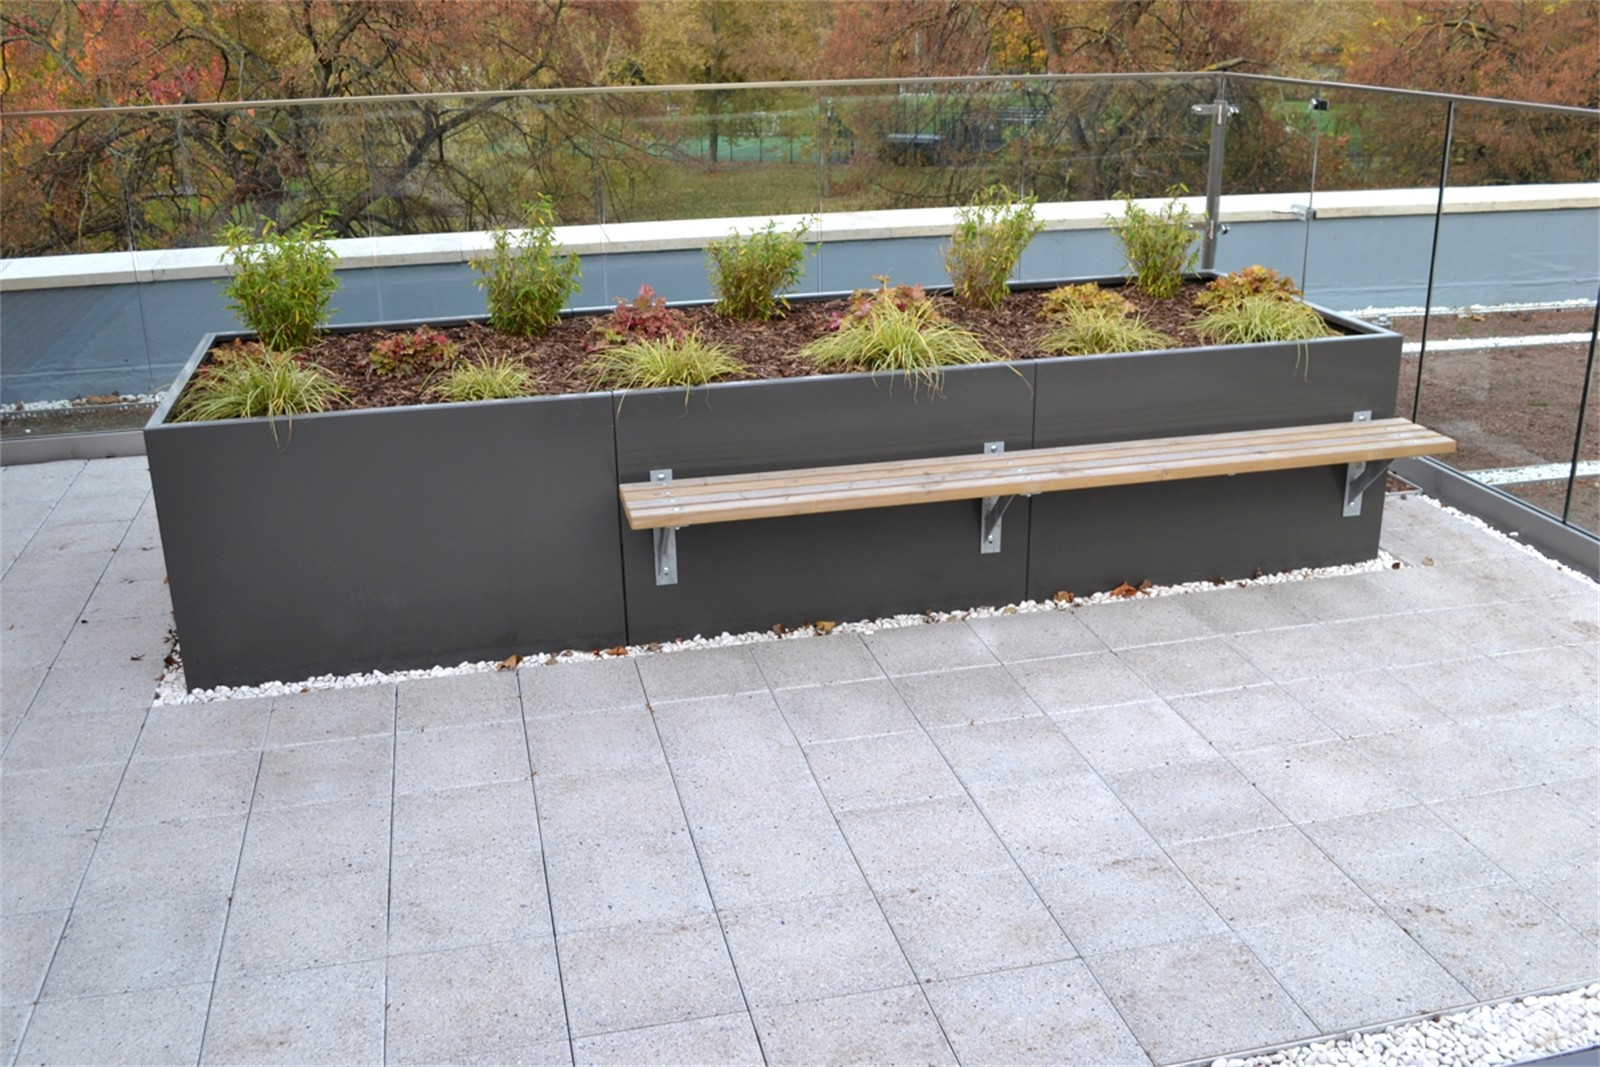 c12310 - RMHC Evelina, roof garden planters